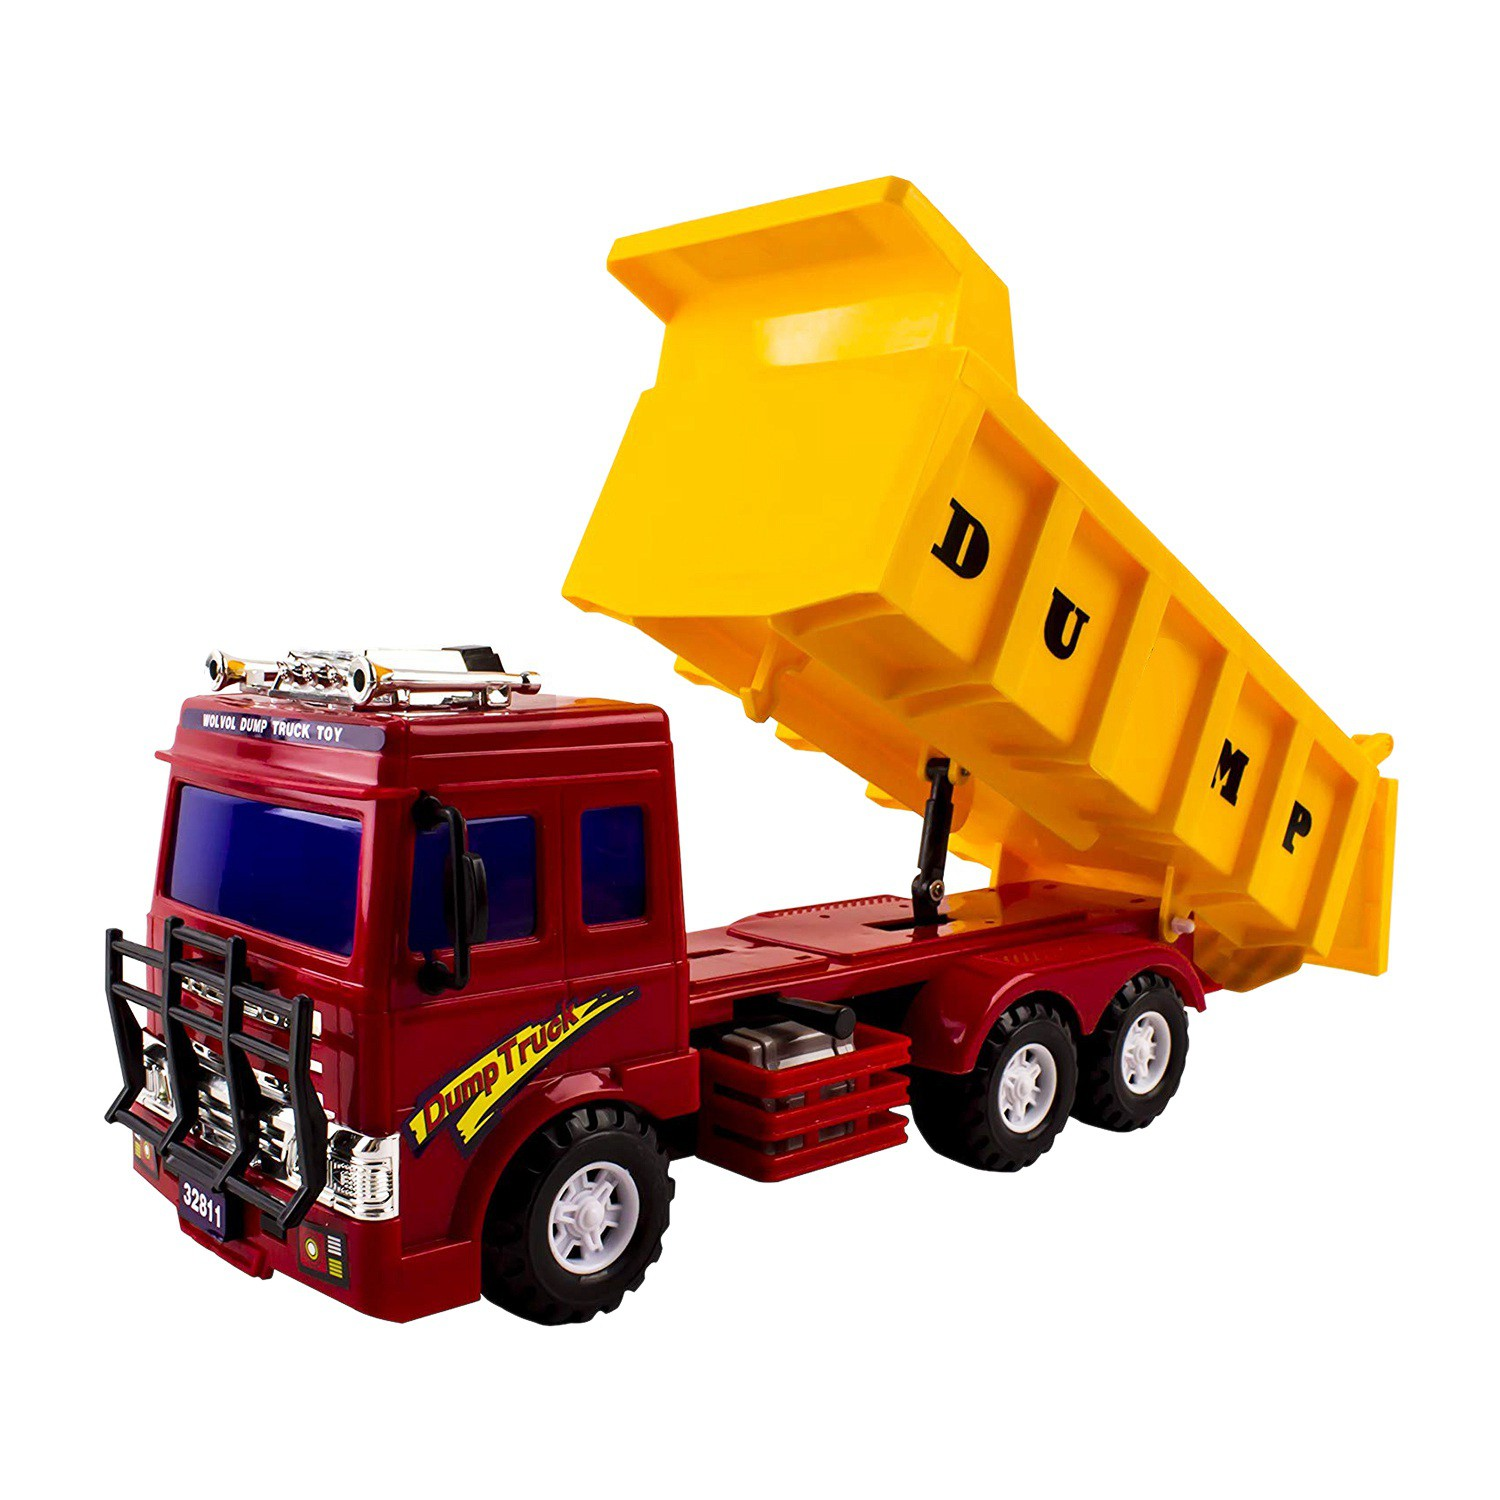 Big Frictional Power Dump Truck Toy For Kids Heavy Equipment Vehicle Toy Perfect Gift Idea For Kids Boys Girls Shopee Brasil